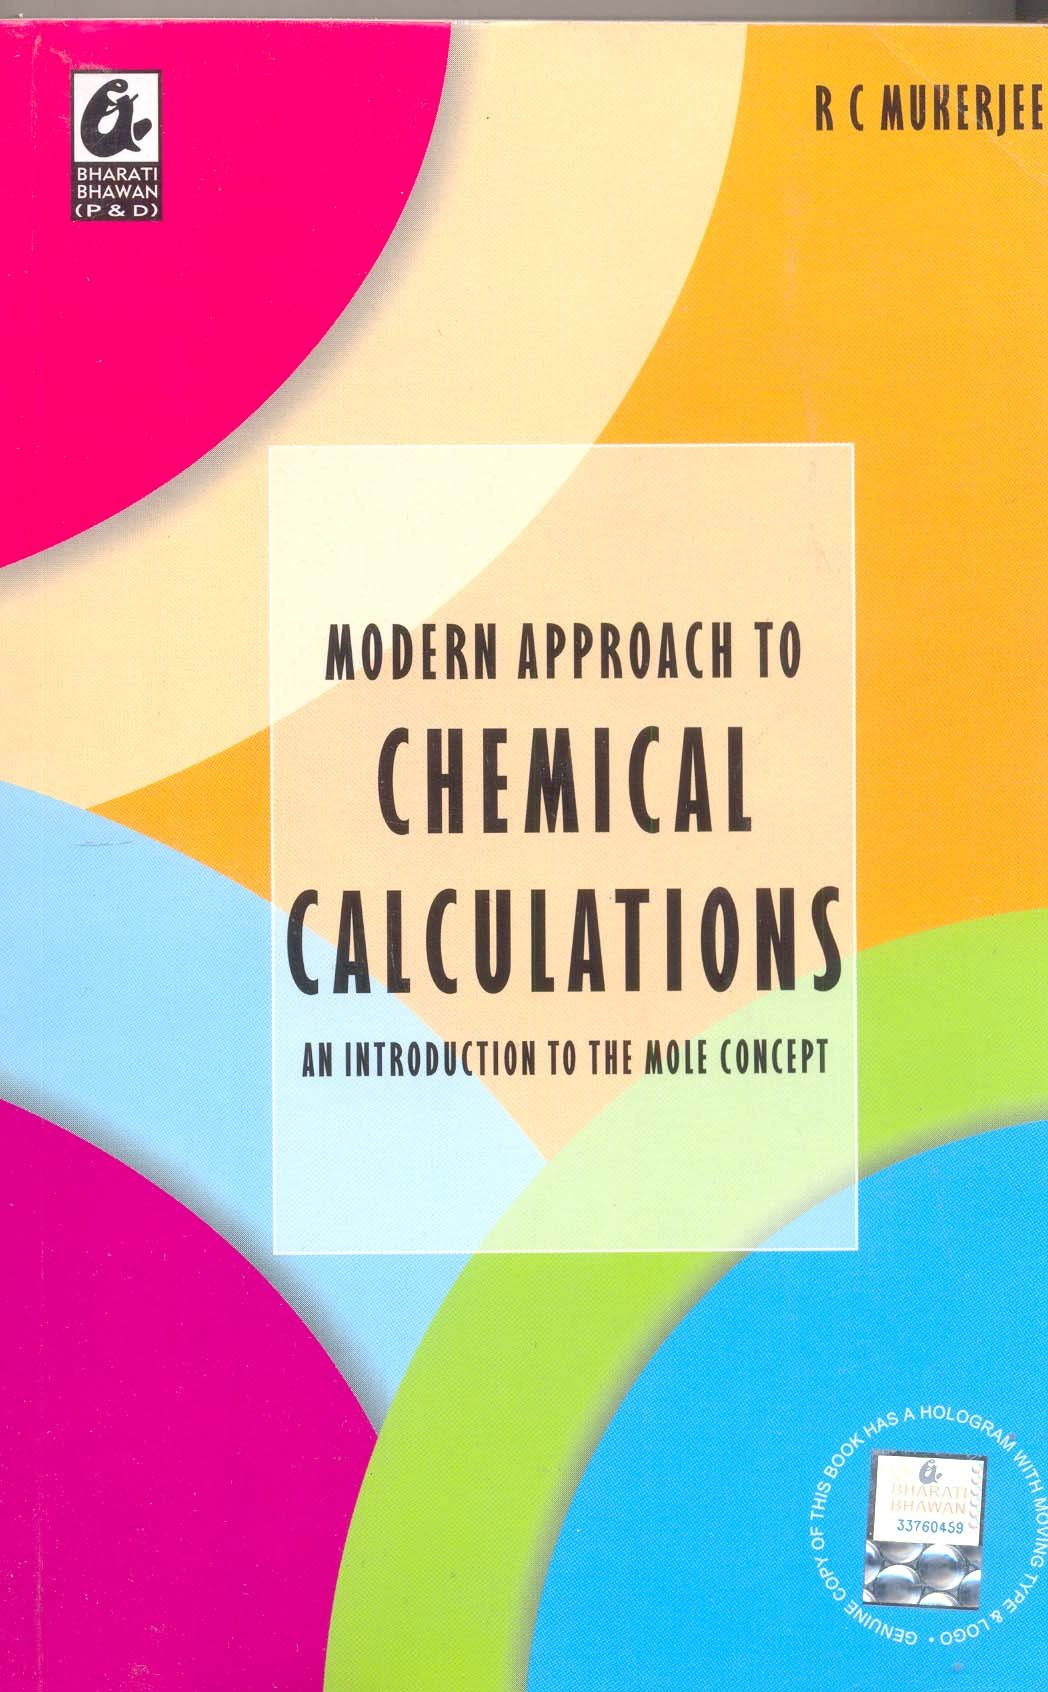 buy modern approach to chemical calculations book online at low